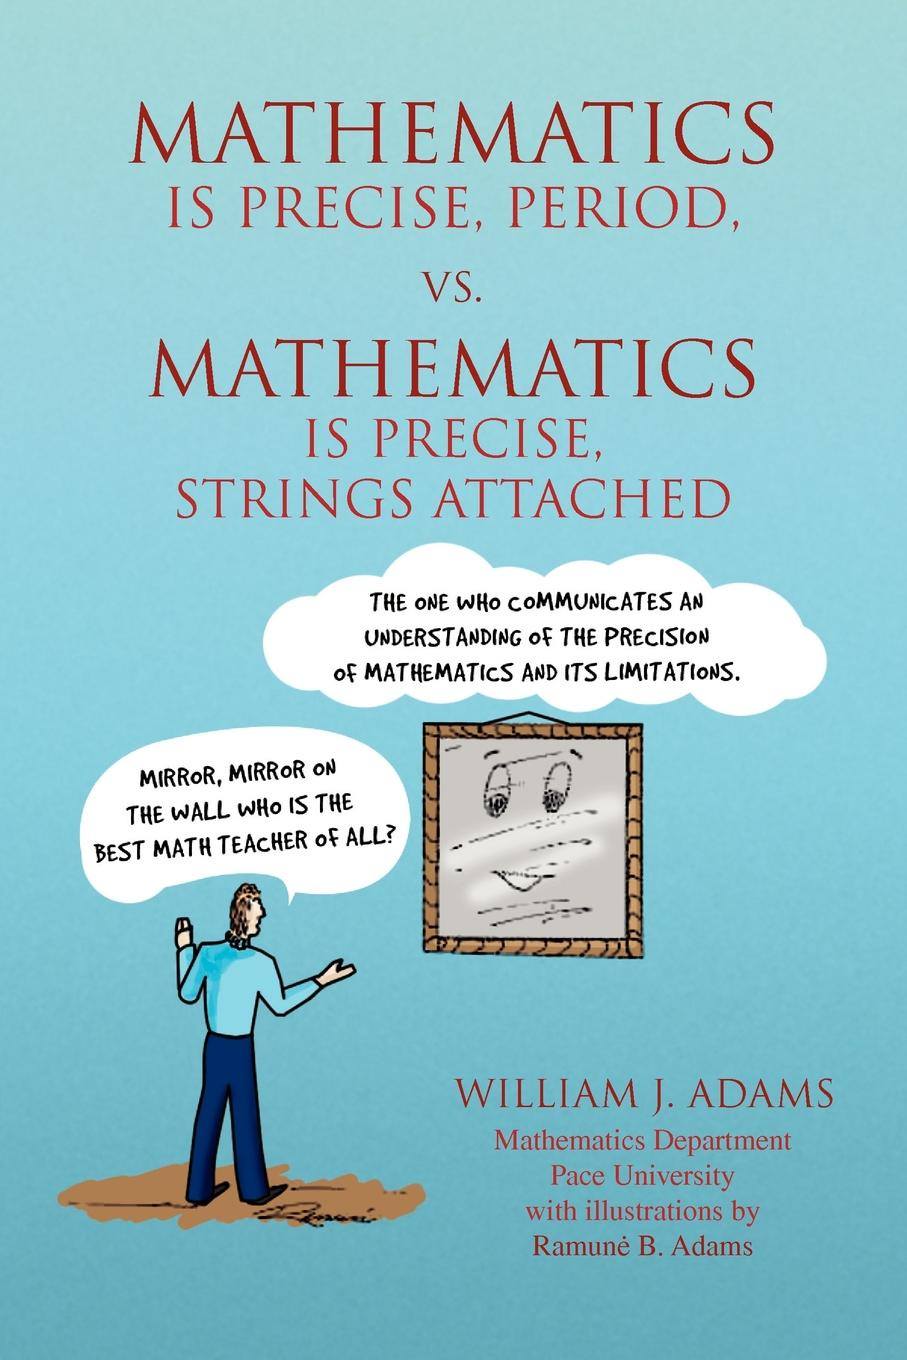 William J. Adams Math Is Precise, Period, vs. Math Is Precise, Strings Attached